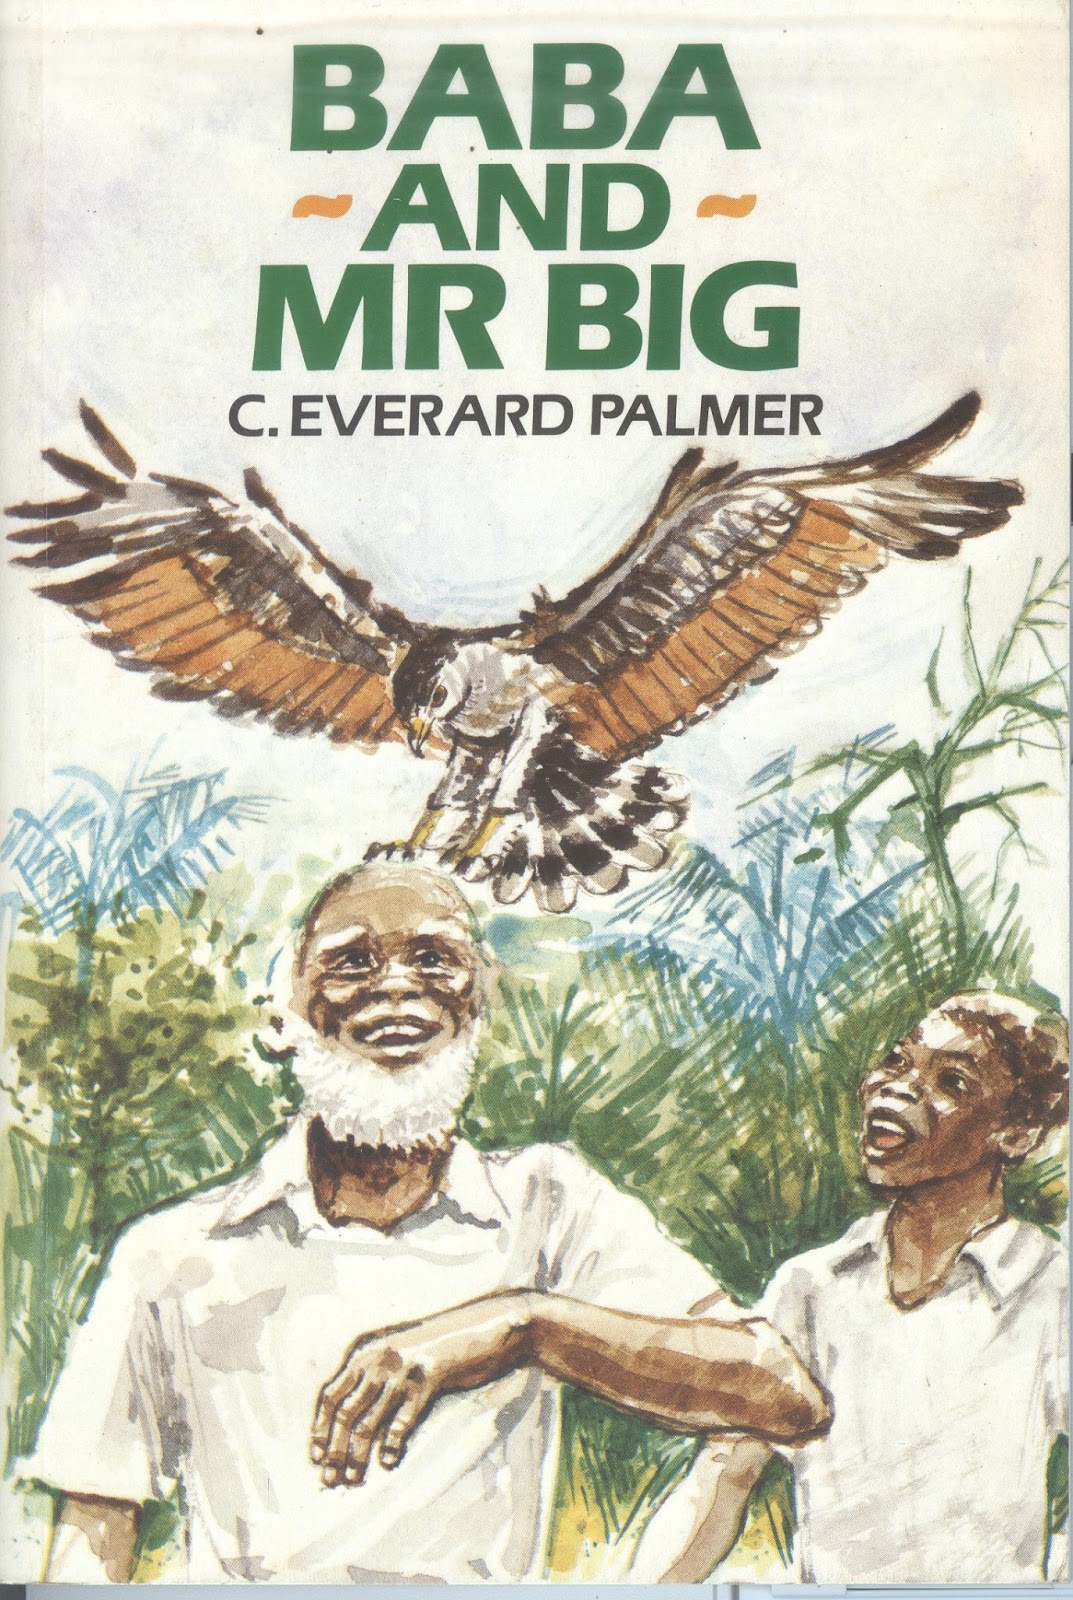 baba and mr big The story, set in jamaica like all of everard palmer's stories, is funny, exciting - and keeps us guessing until the end about the author: c everard palmer was.